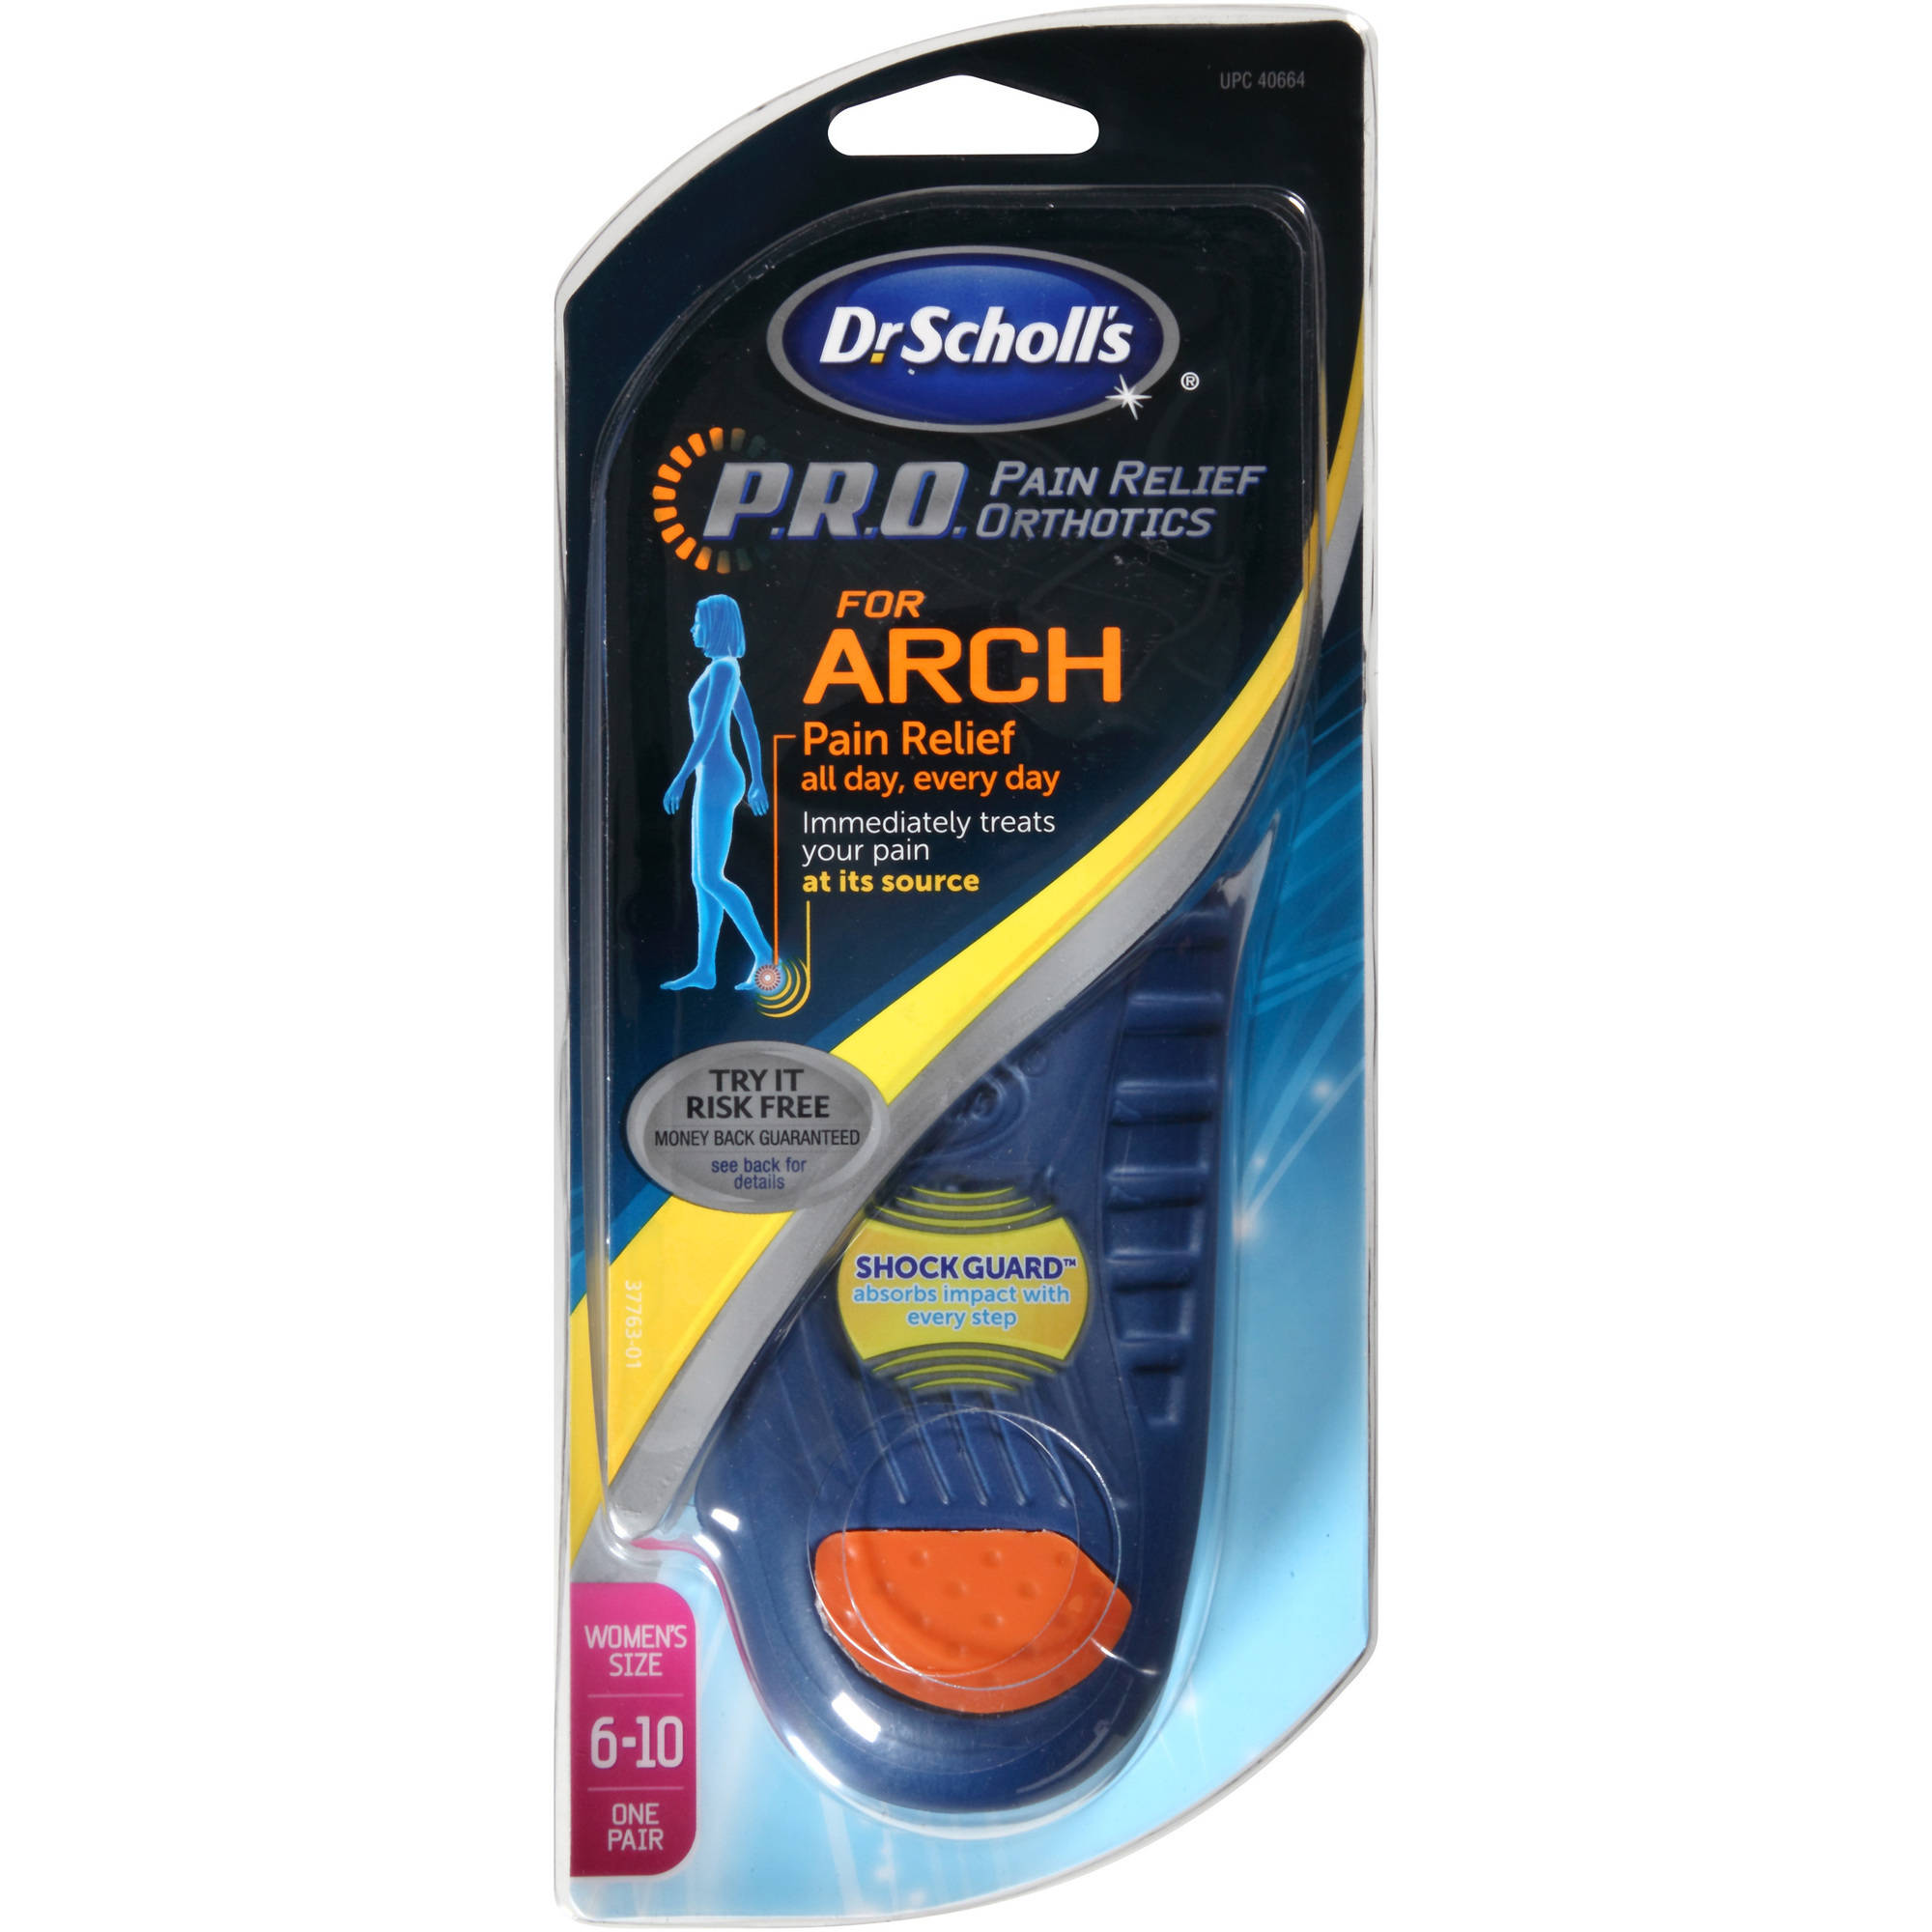 Dr. Scholl's Pain Relief Orthotics For Arch, Women's Size 6-10, 1 pr